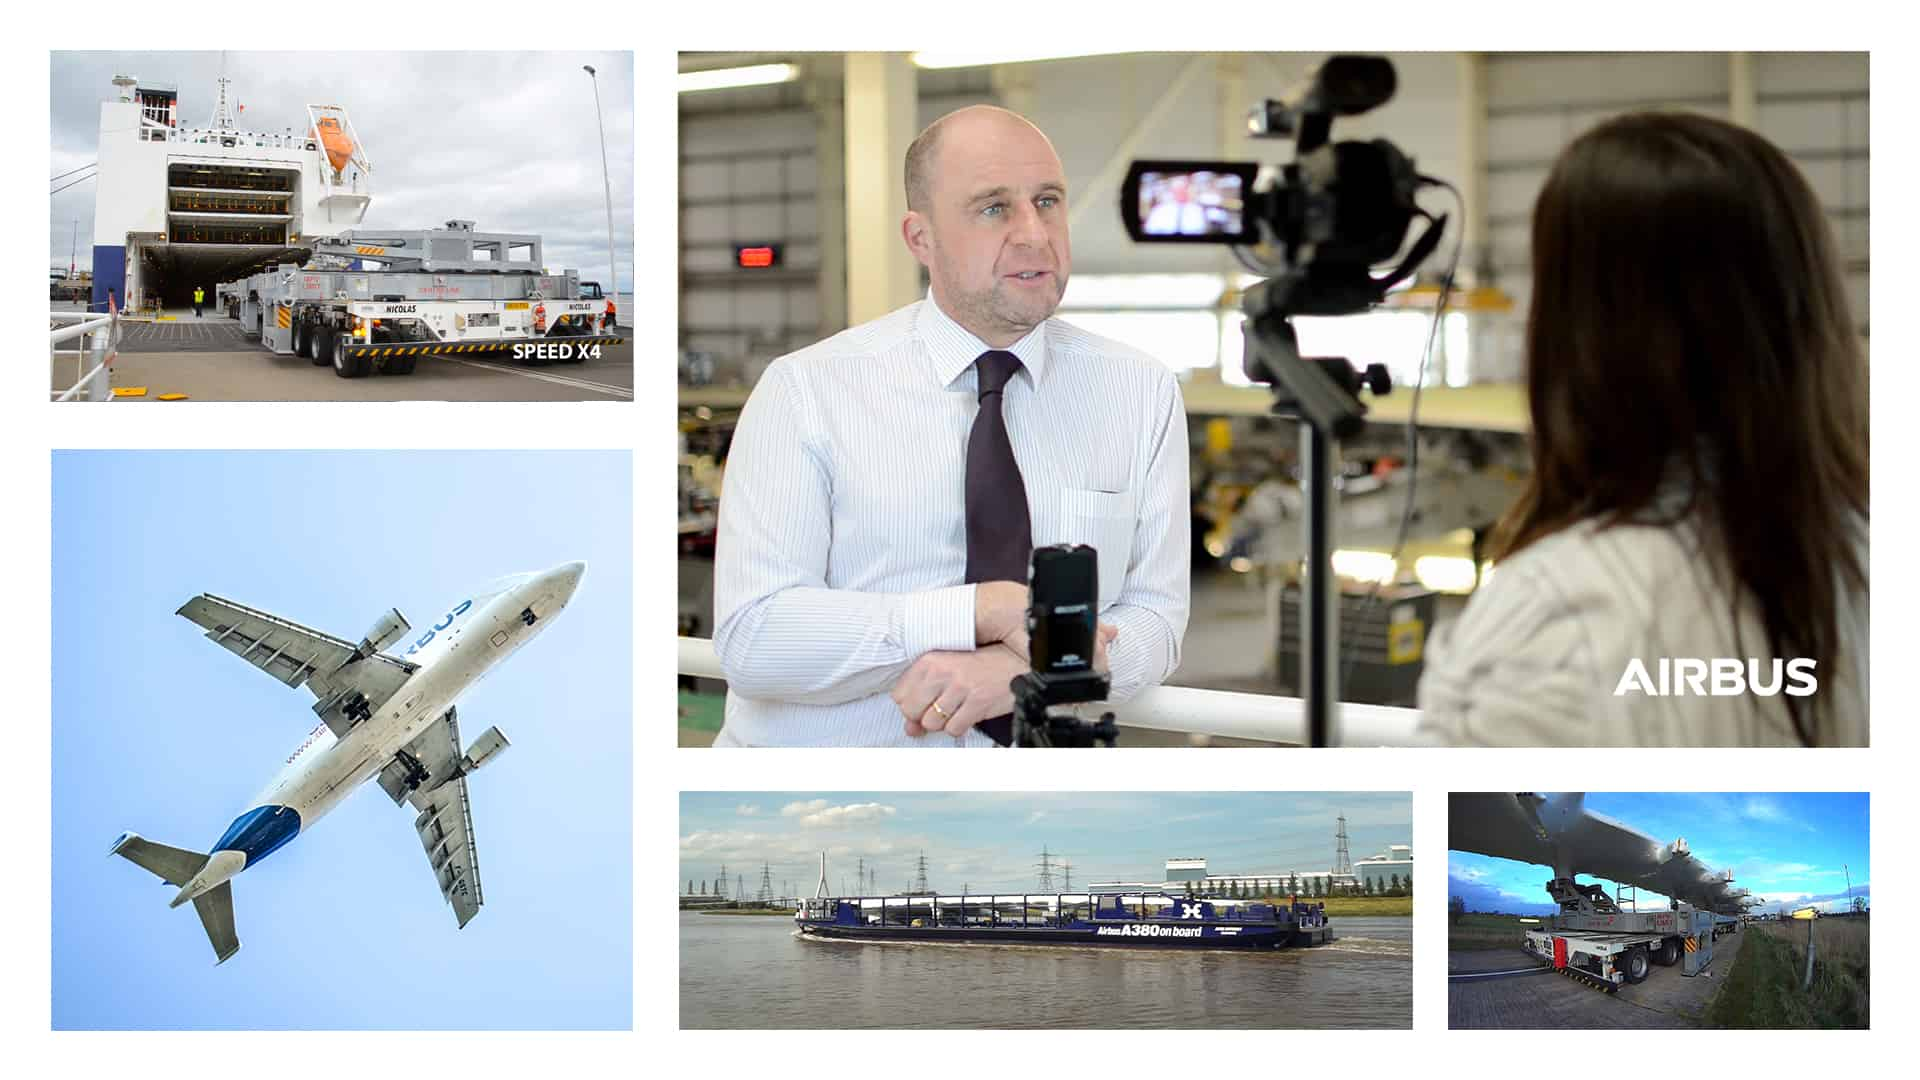 Airbus monthly communications, process videos and photography